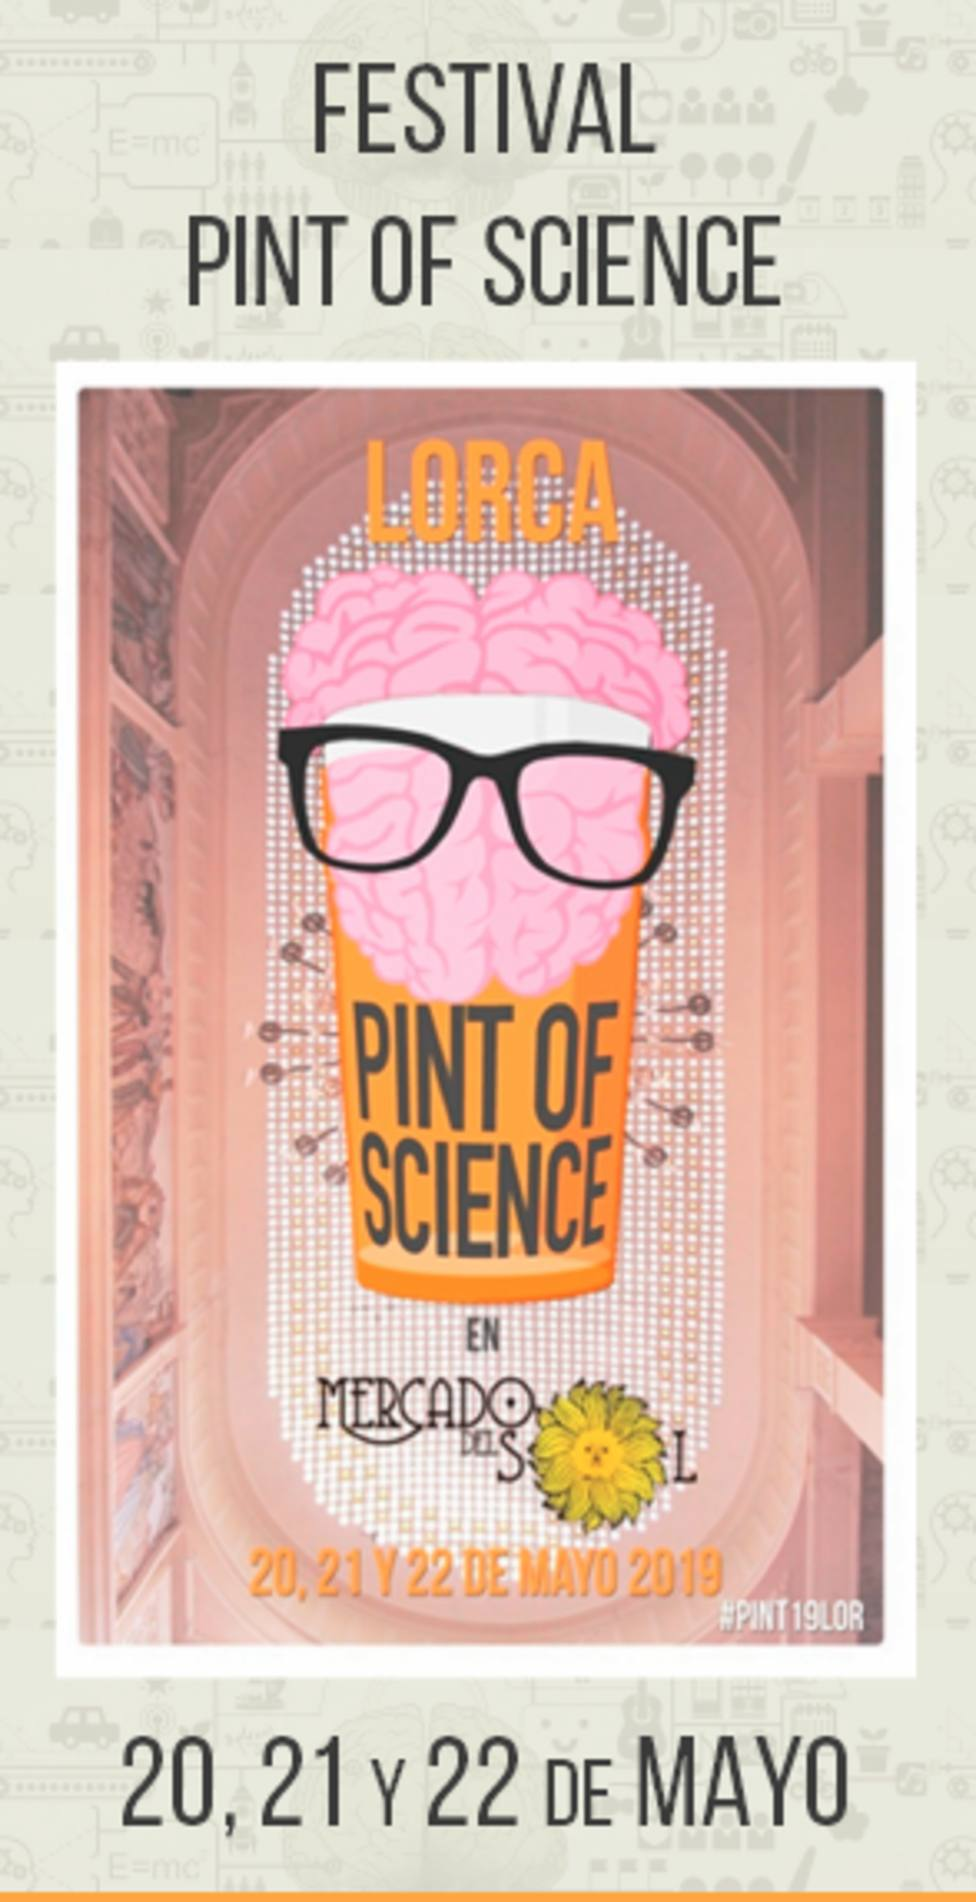 Lorca se apunta a Pint of Science 2019